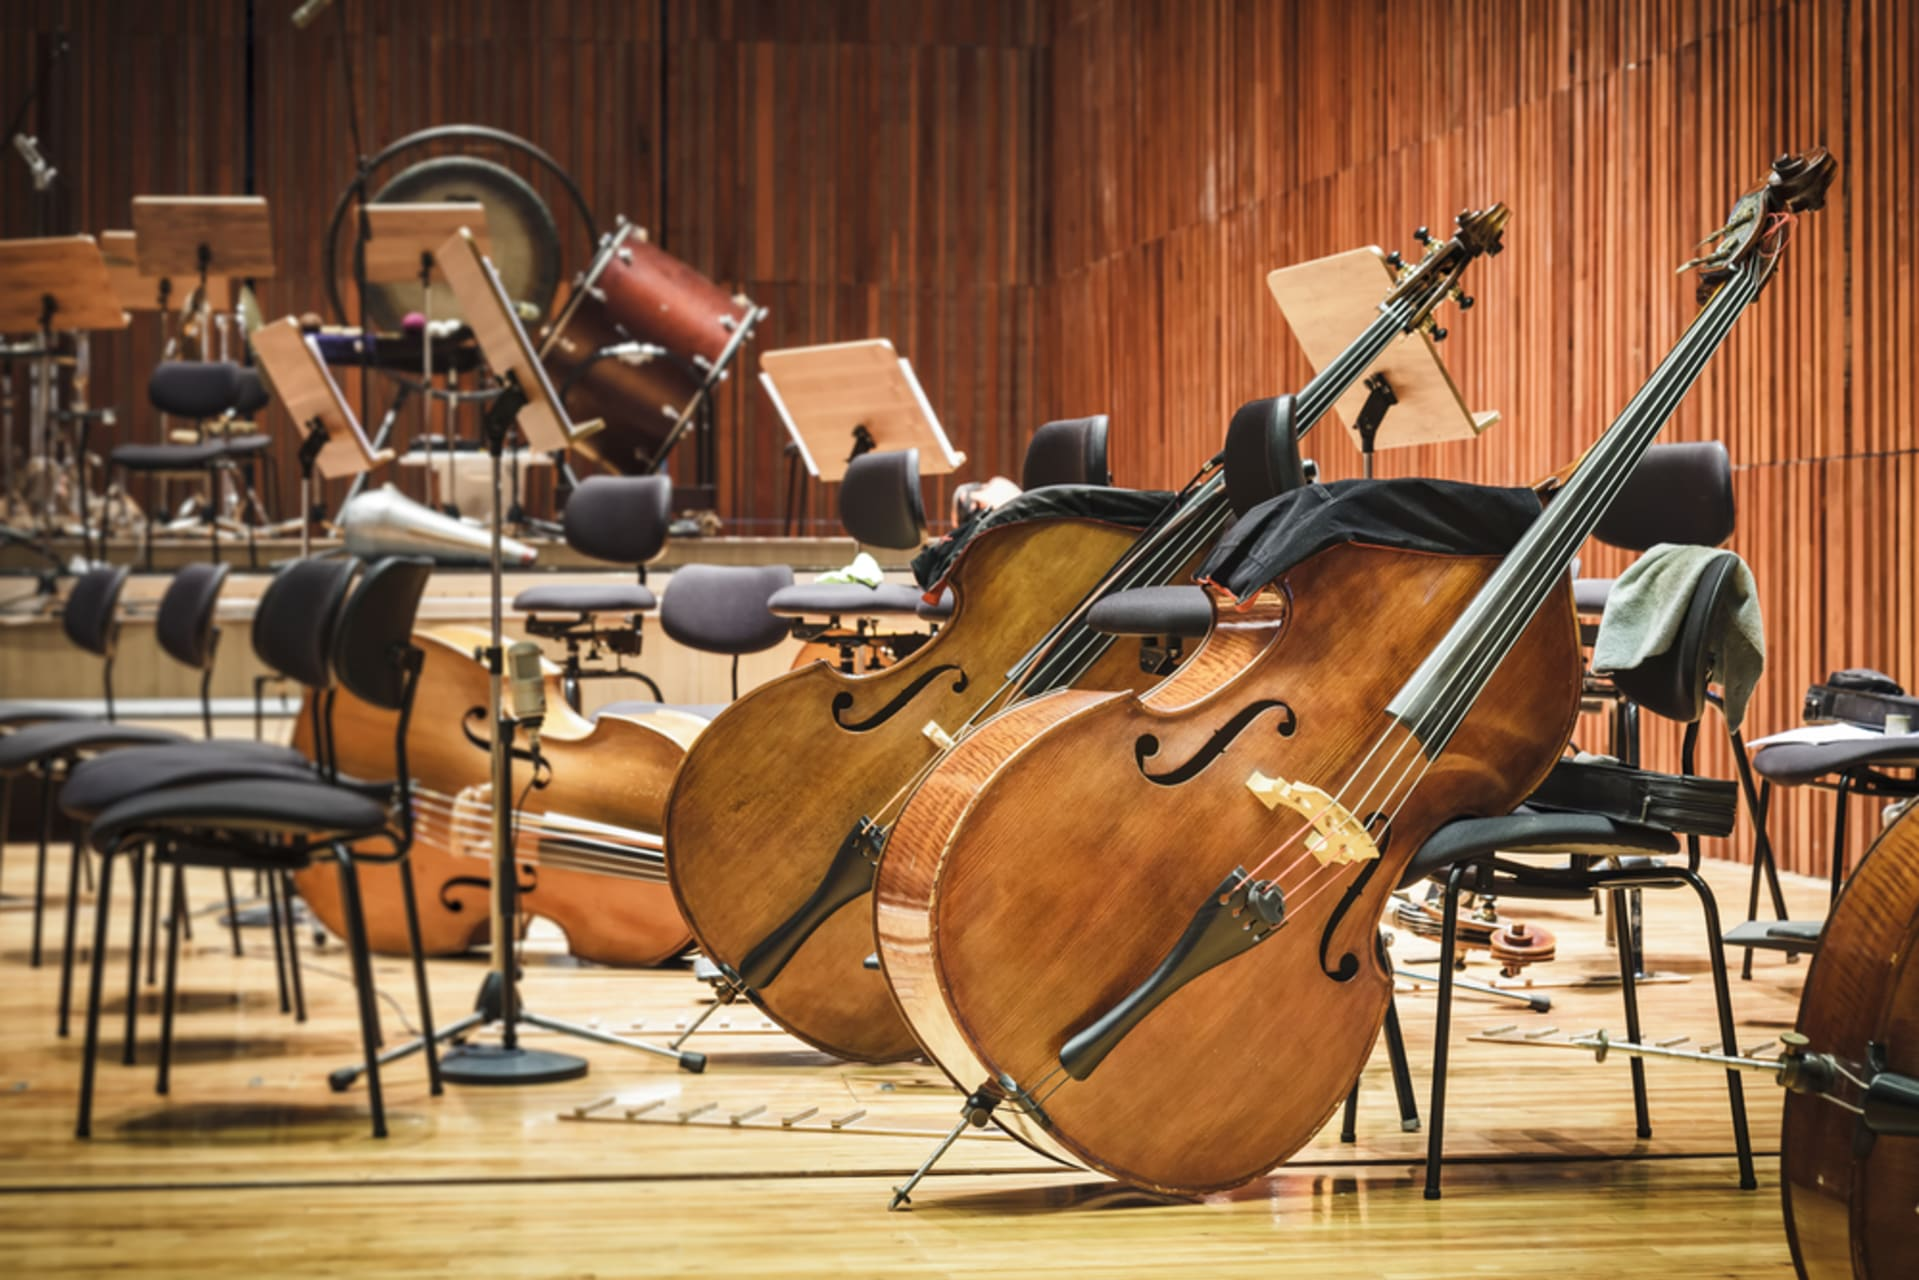 Porto - Let's indulge with Classical Music!